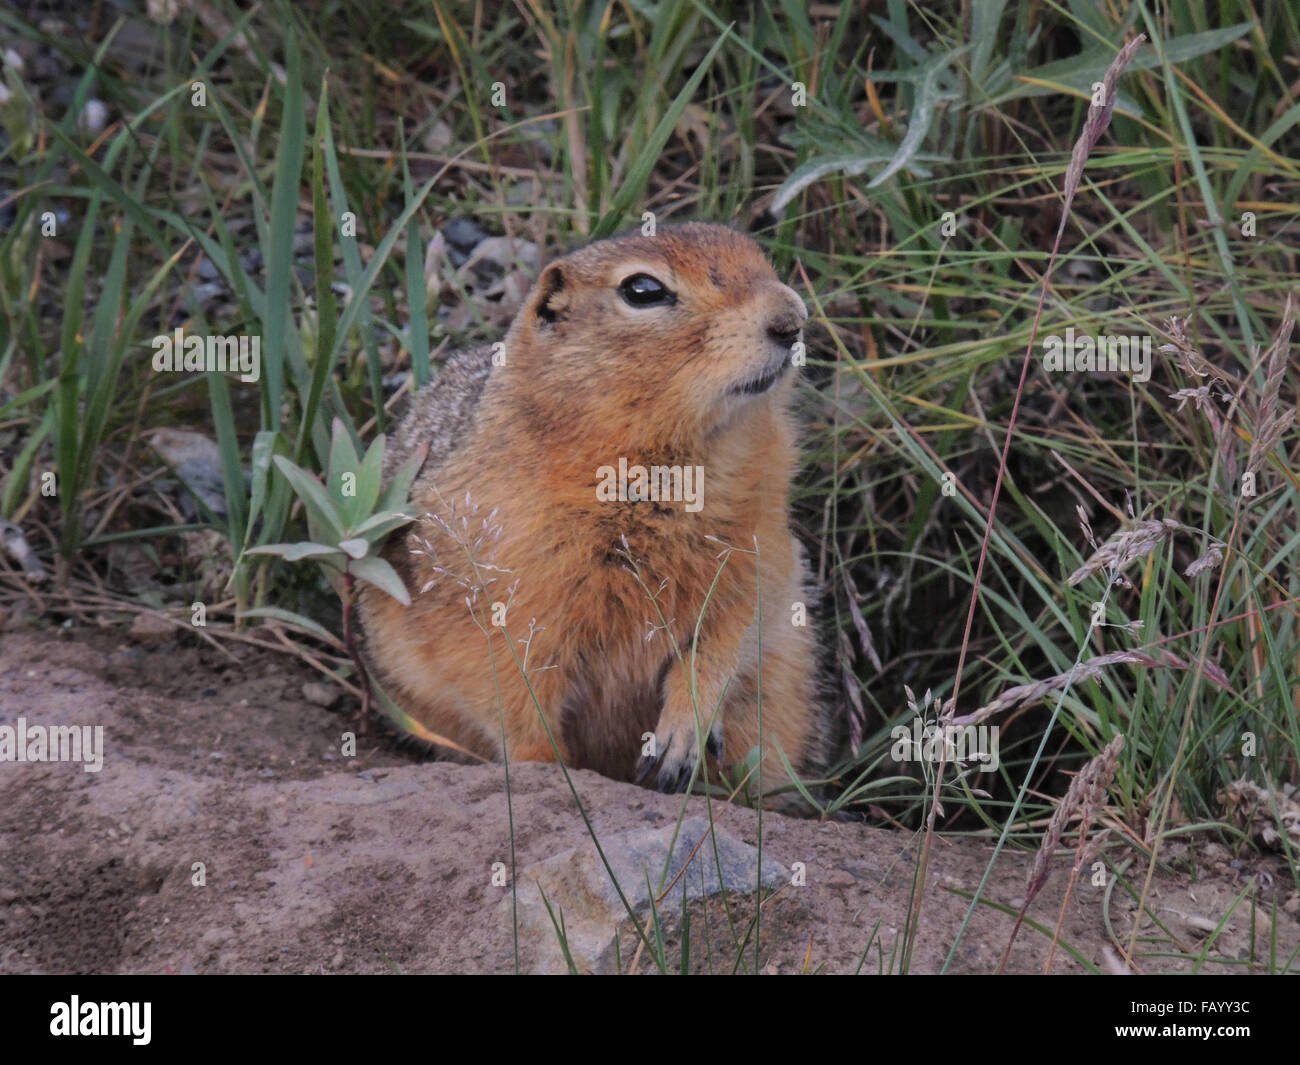 Arctic Ground Squirrels (Spermophilds parryii) are an important factor in the ecology of Denali National Park. Many - Stock Image